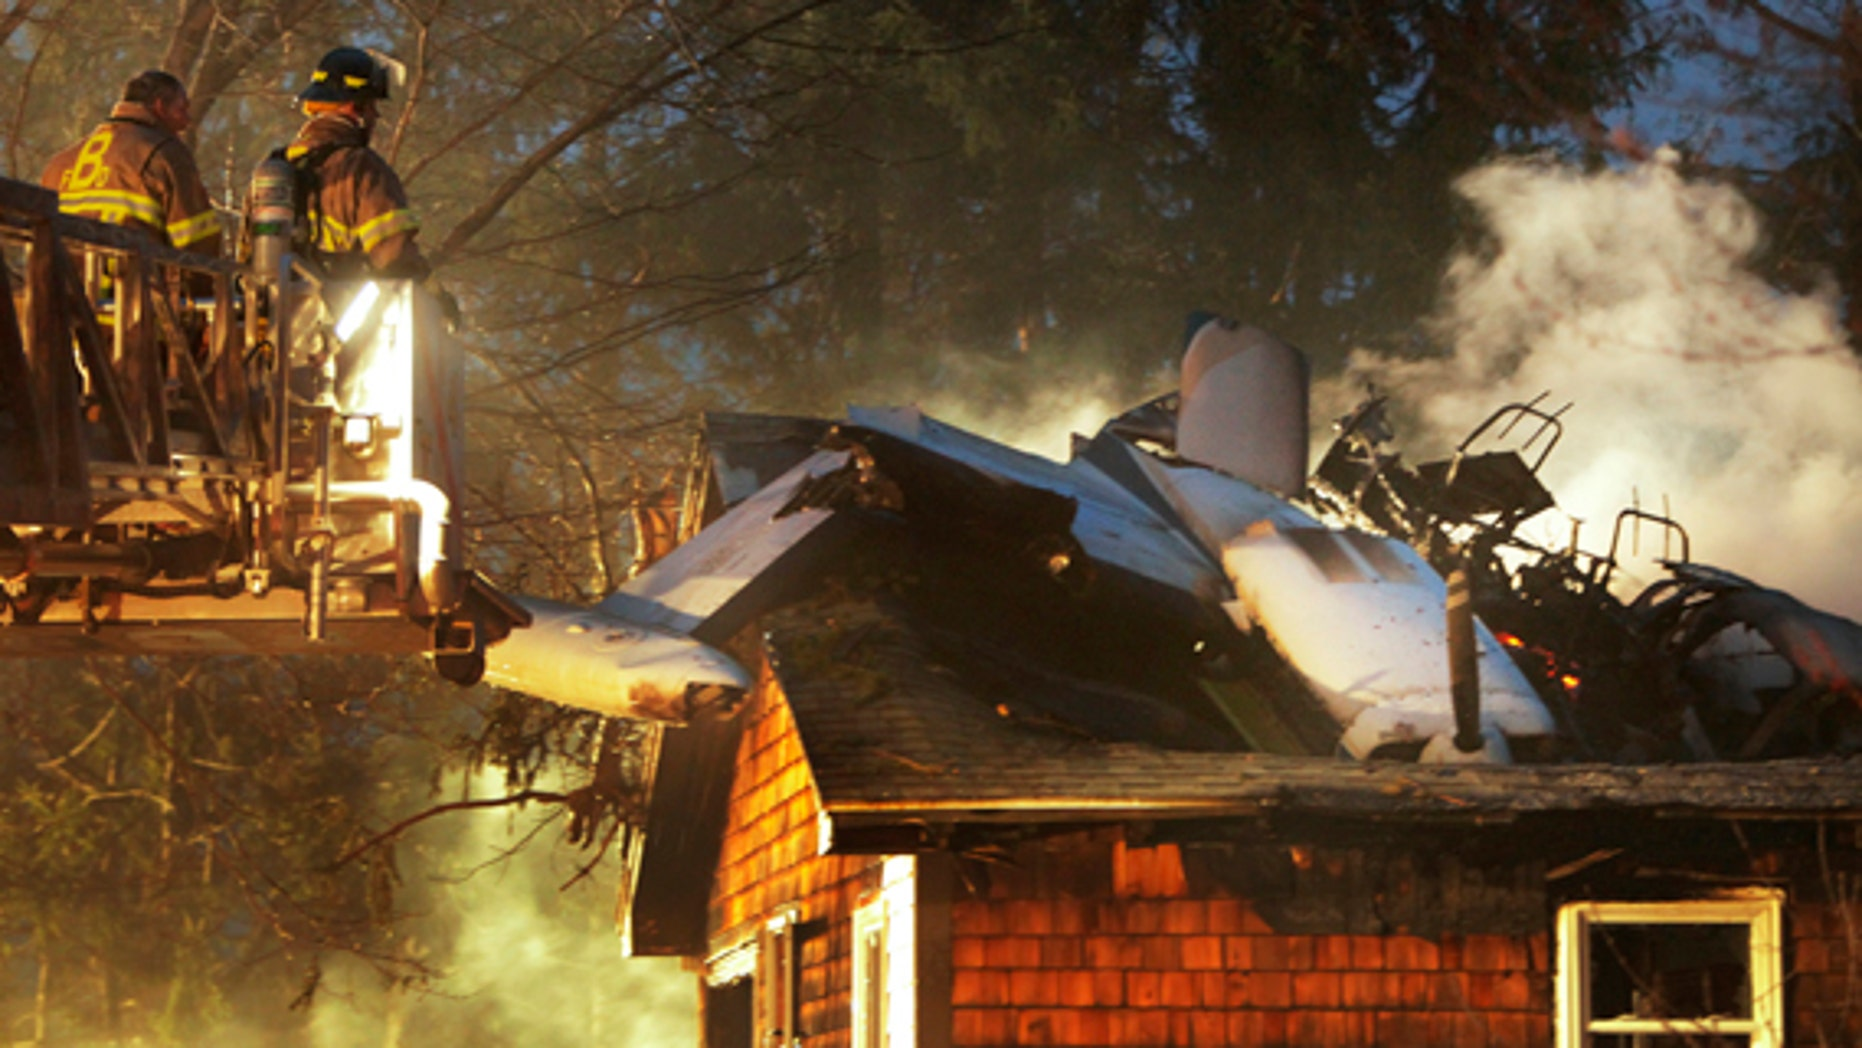 April 10: Firemen work at the scene where a small plane crashed into a house near the Biddeford, Maine